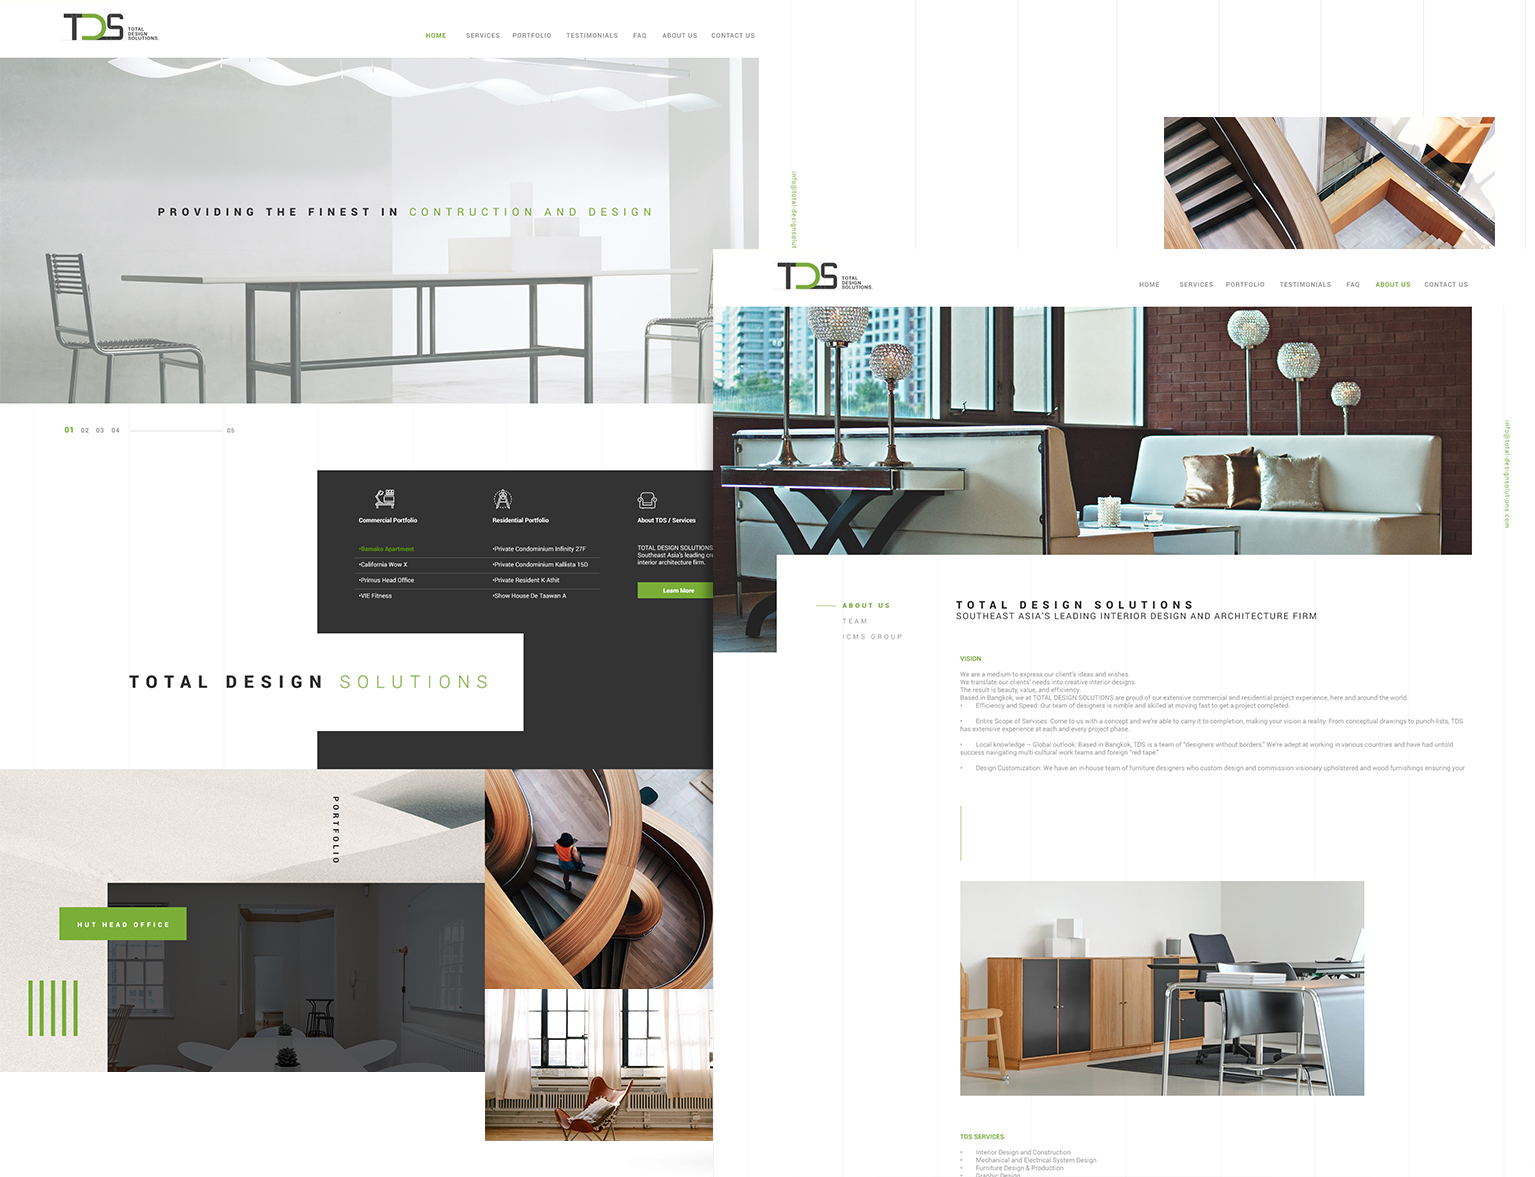 KOS Design - Total Design Solutions